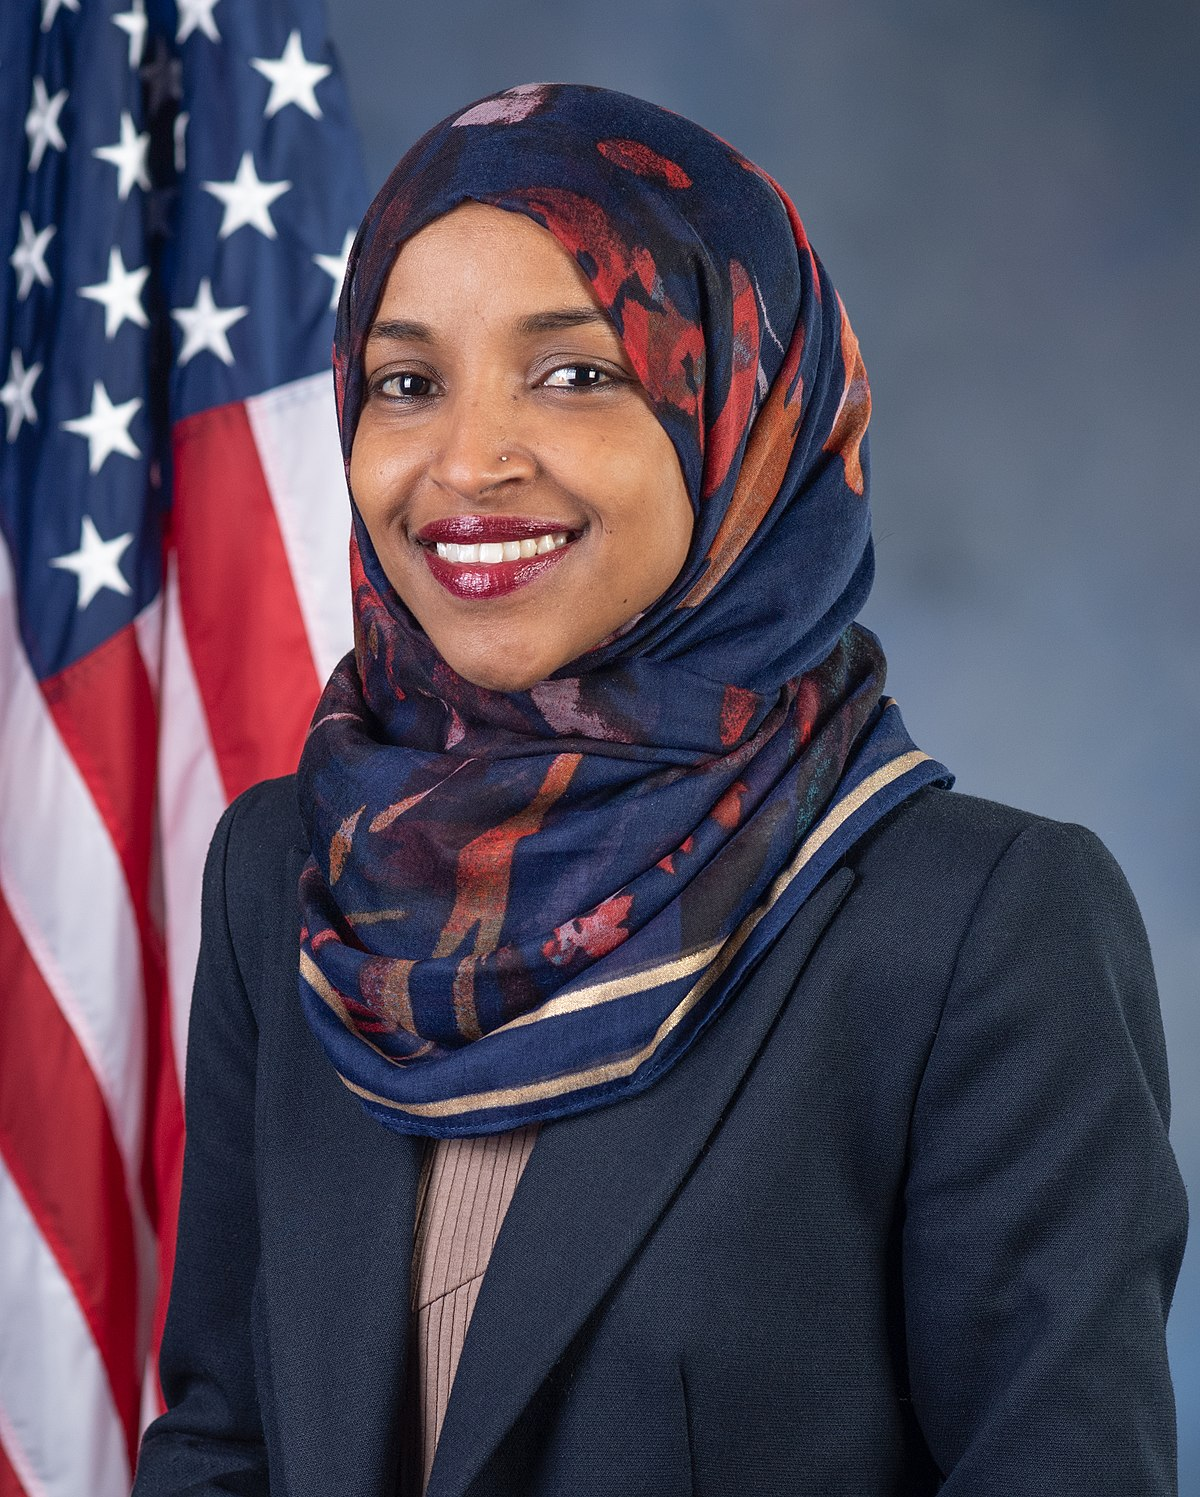 1200px-Ilhan_Omar,_official_portrait,_116th_Congress_(cropped)_A.jpg